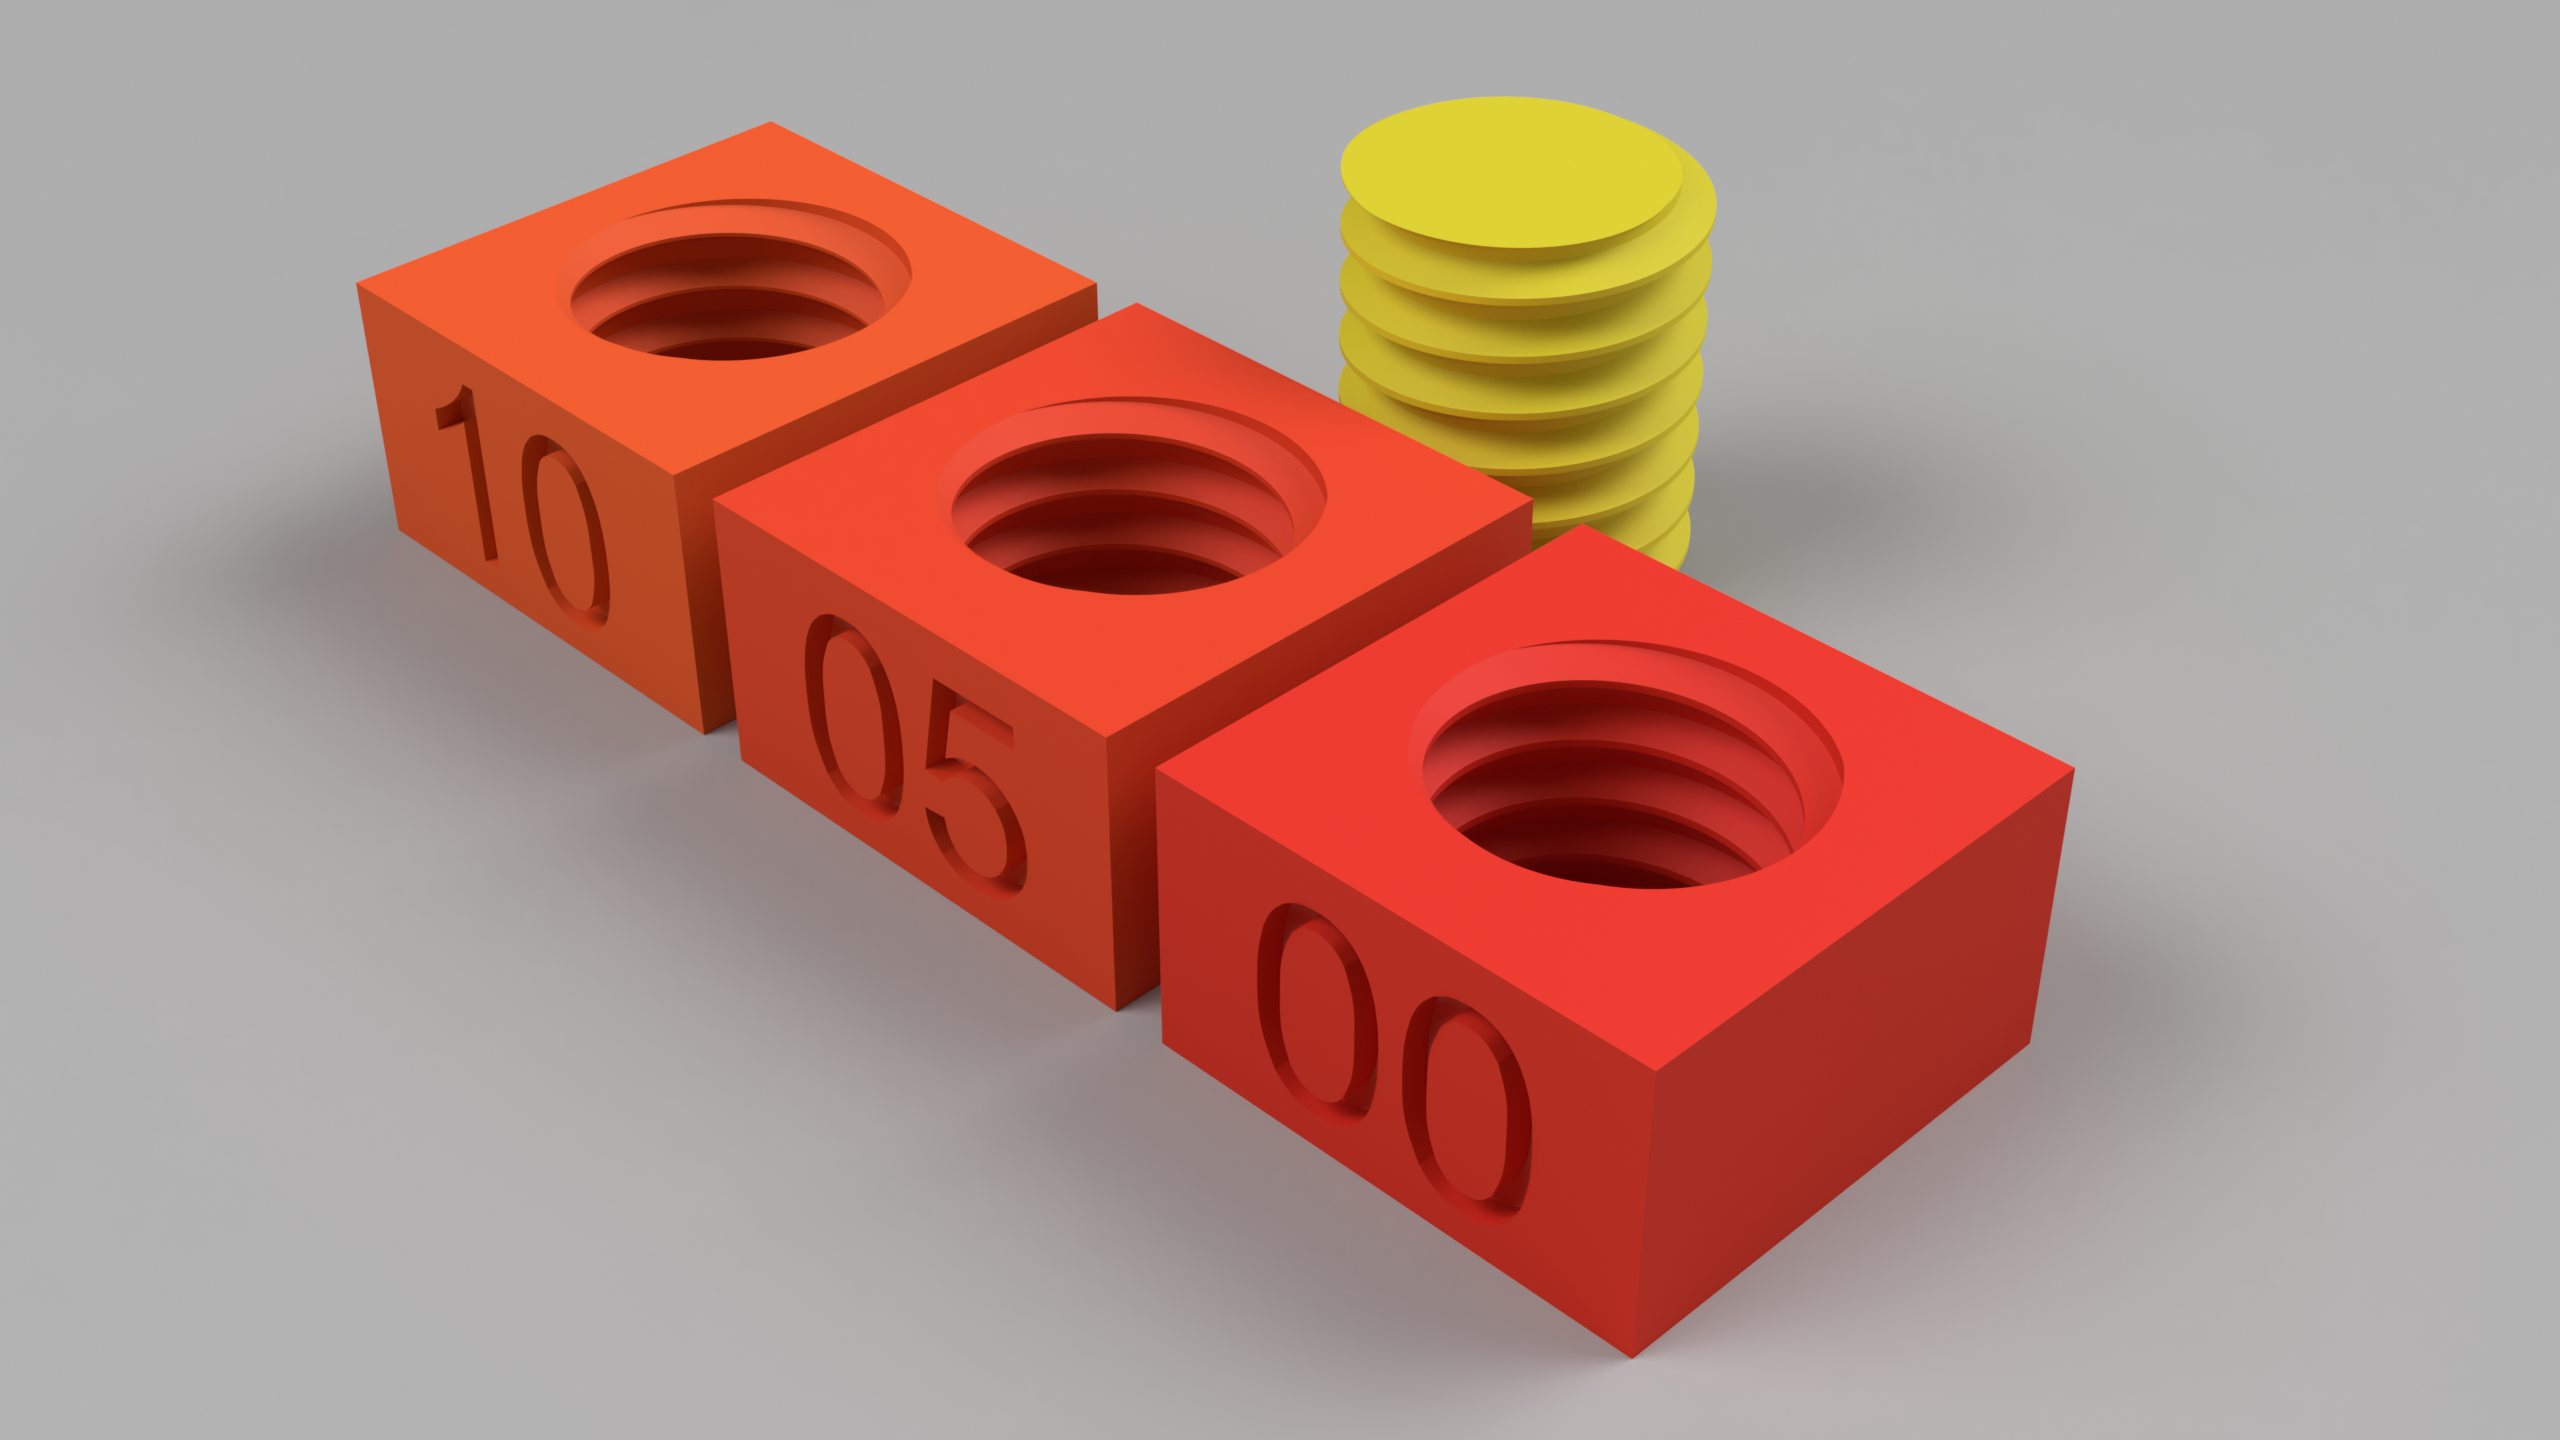 ThreadTest01_2017-Aug-29_02-15-32PM-000_CustomizedView33723945733.png Download free STL file Thread test • 3D print model, Wilko